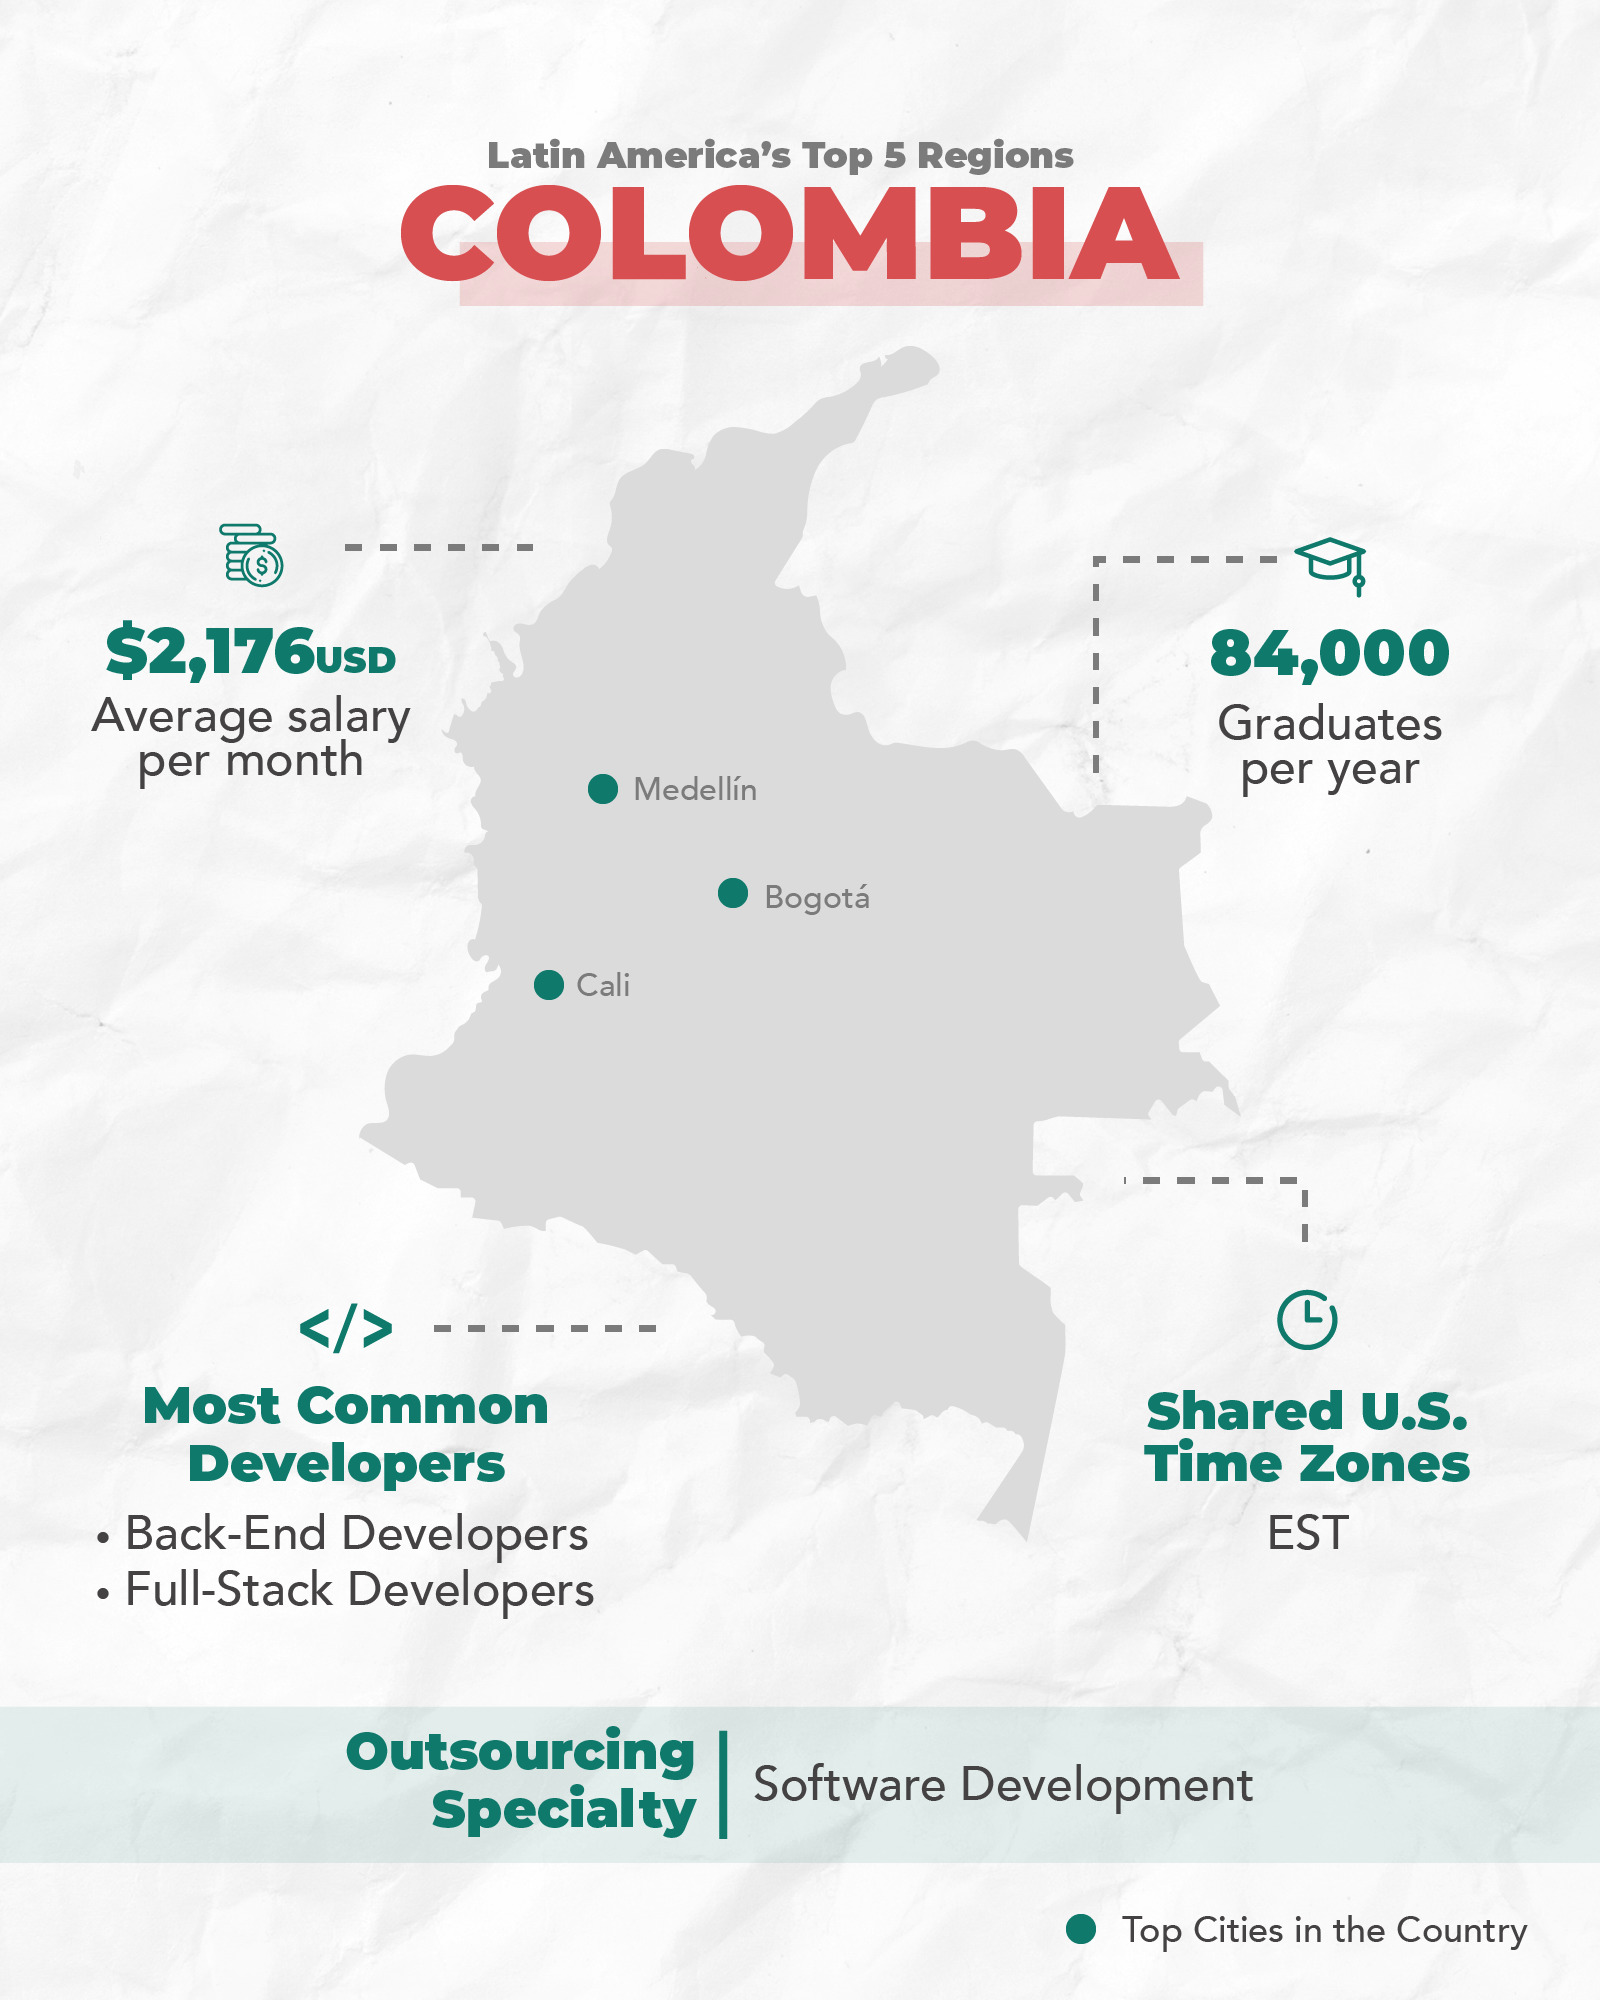 Colombia's Tech Ecosystem